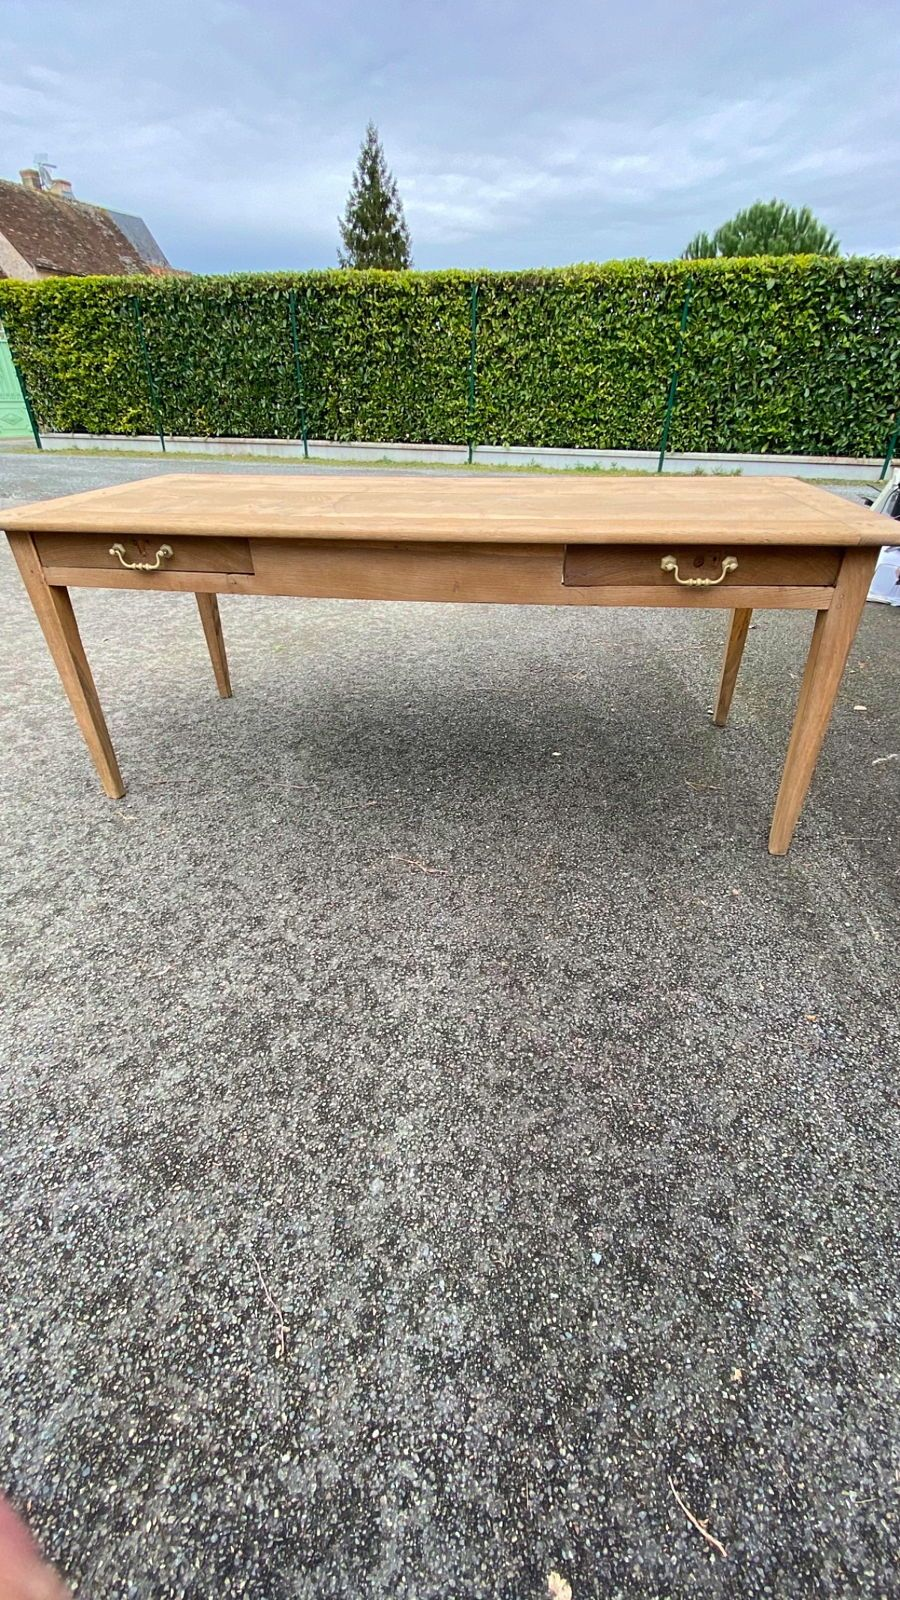 Vends belle table vendéenne